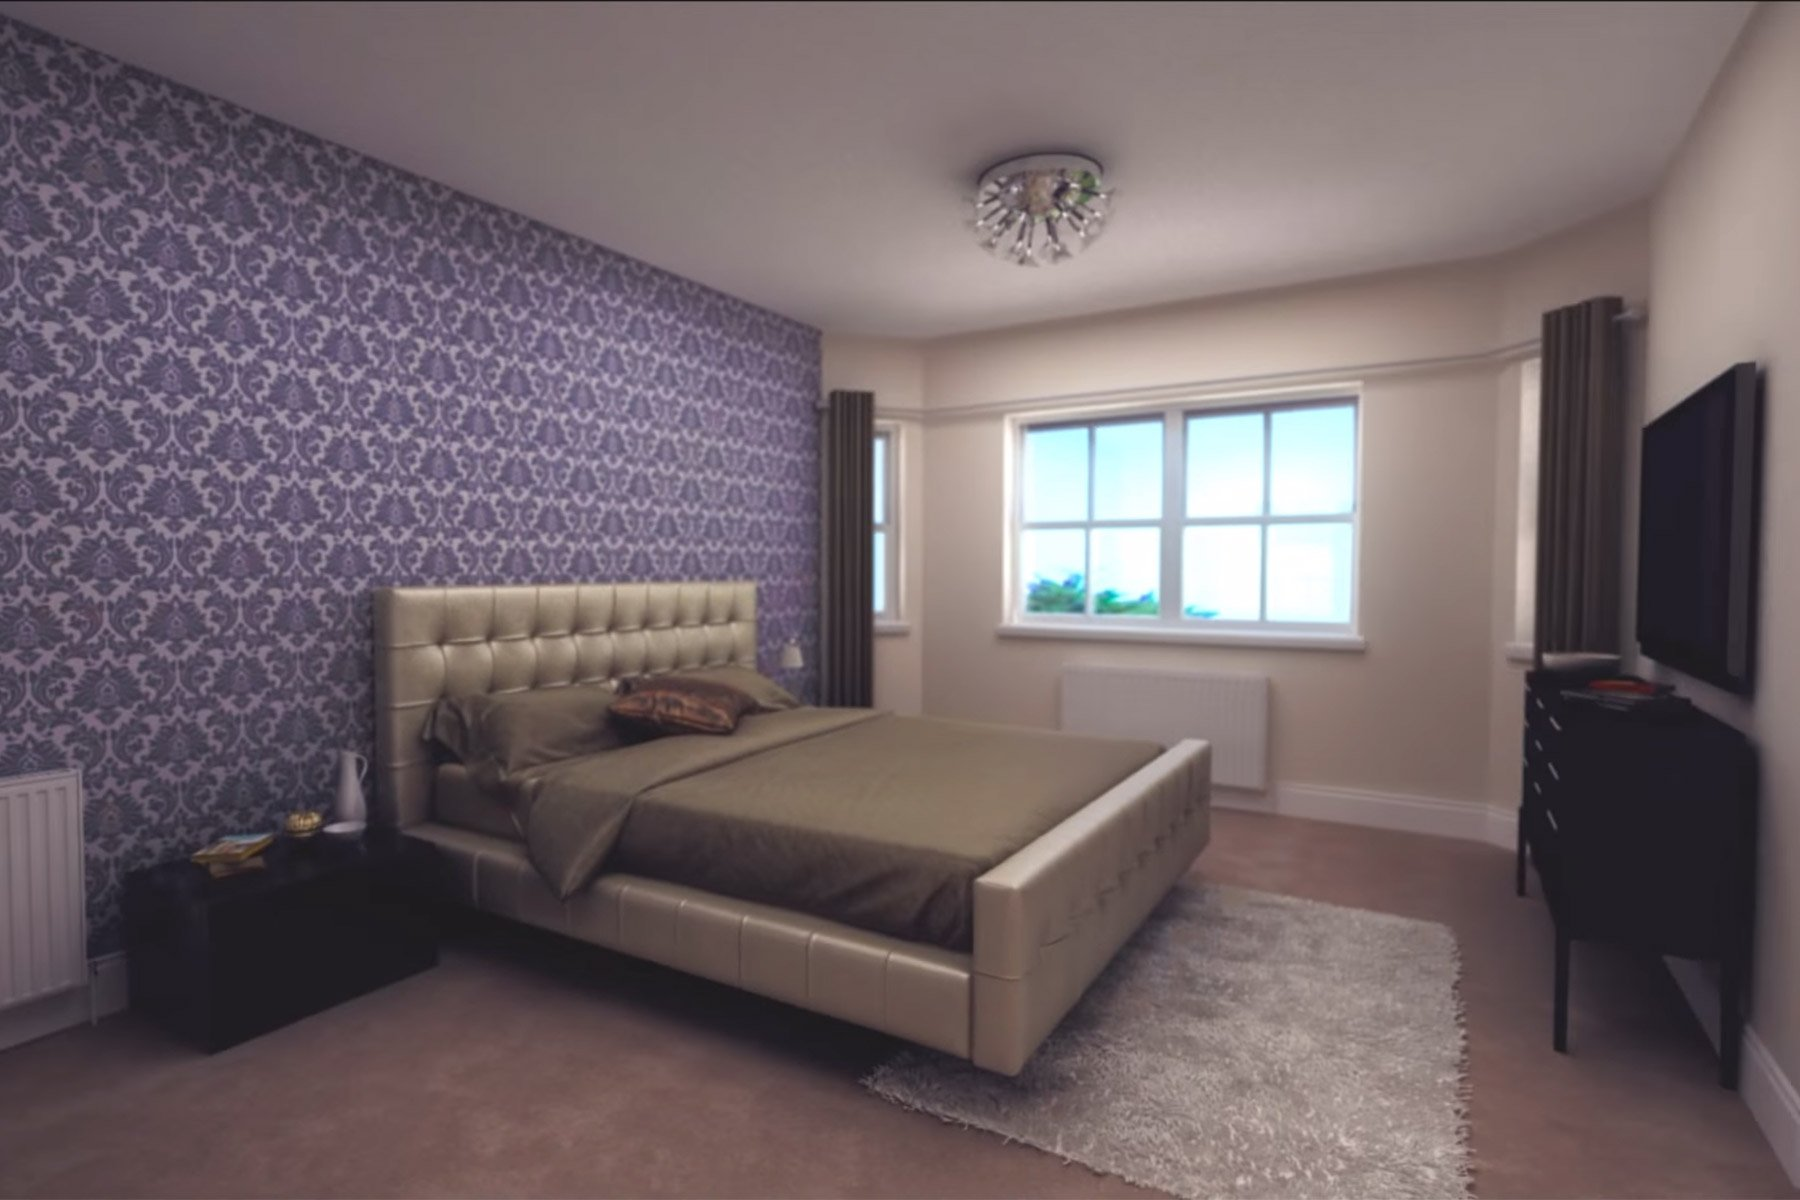 Winford_Bedroom5_Web